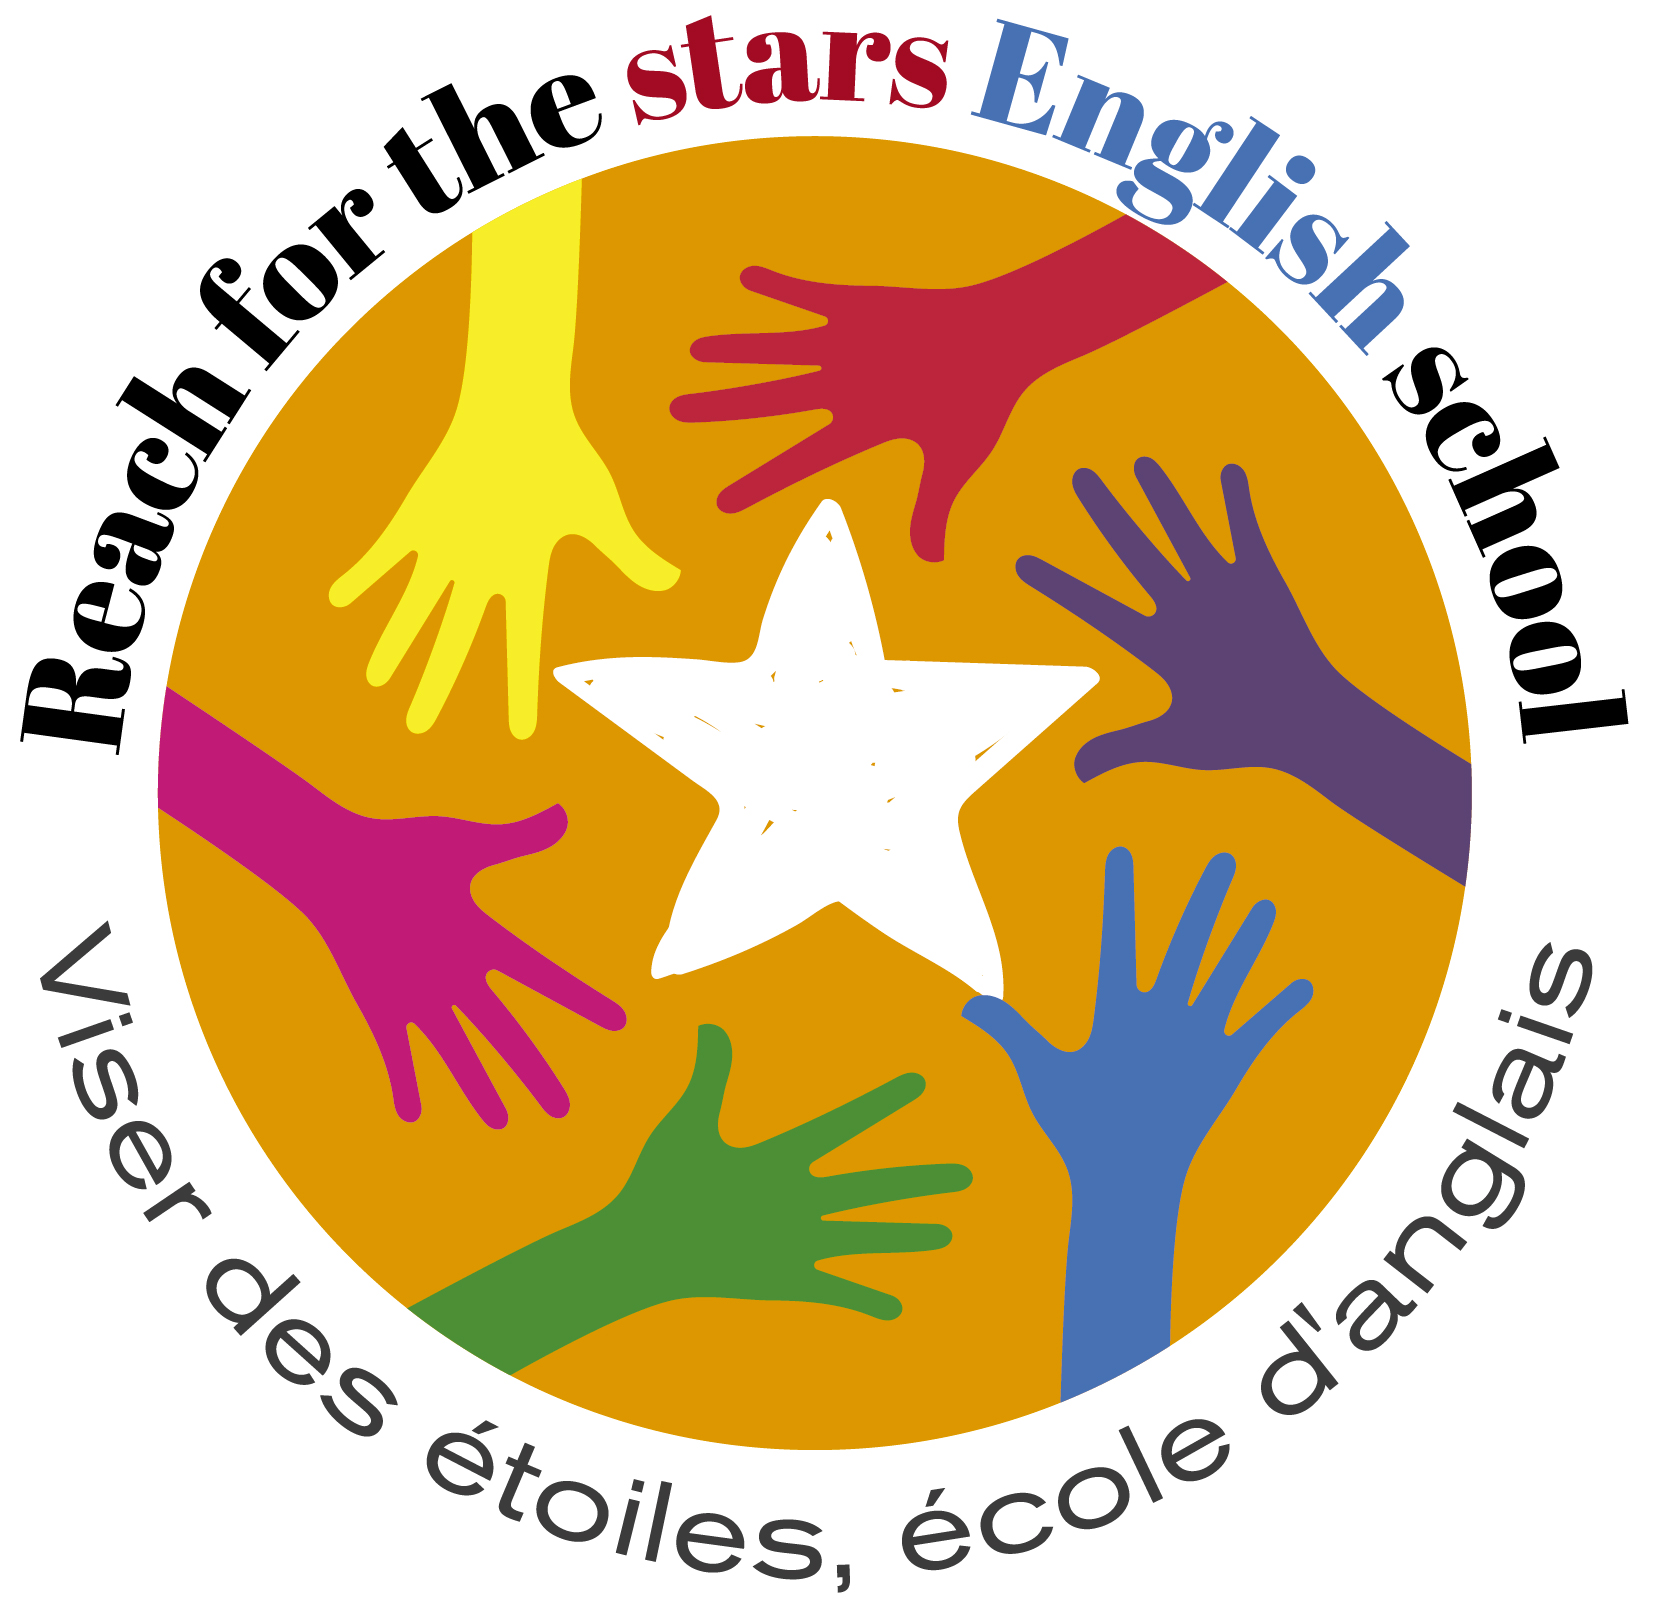 Reache-for-the-stars-English-School.jpg